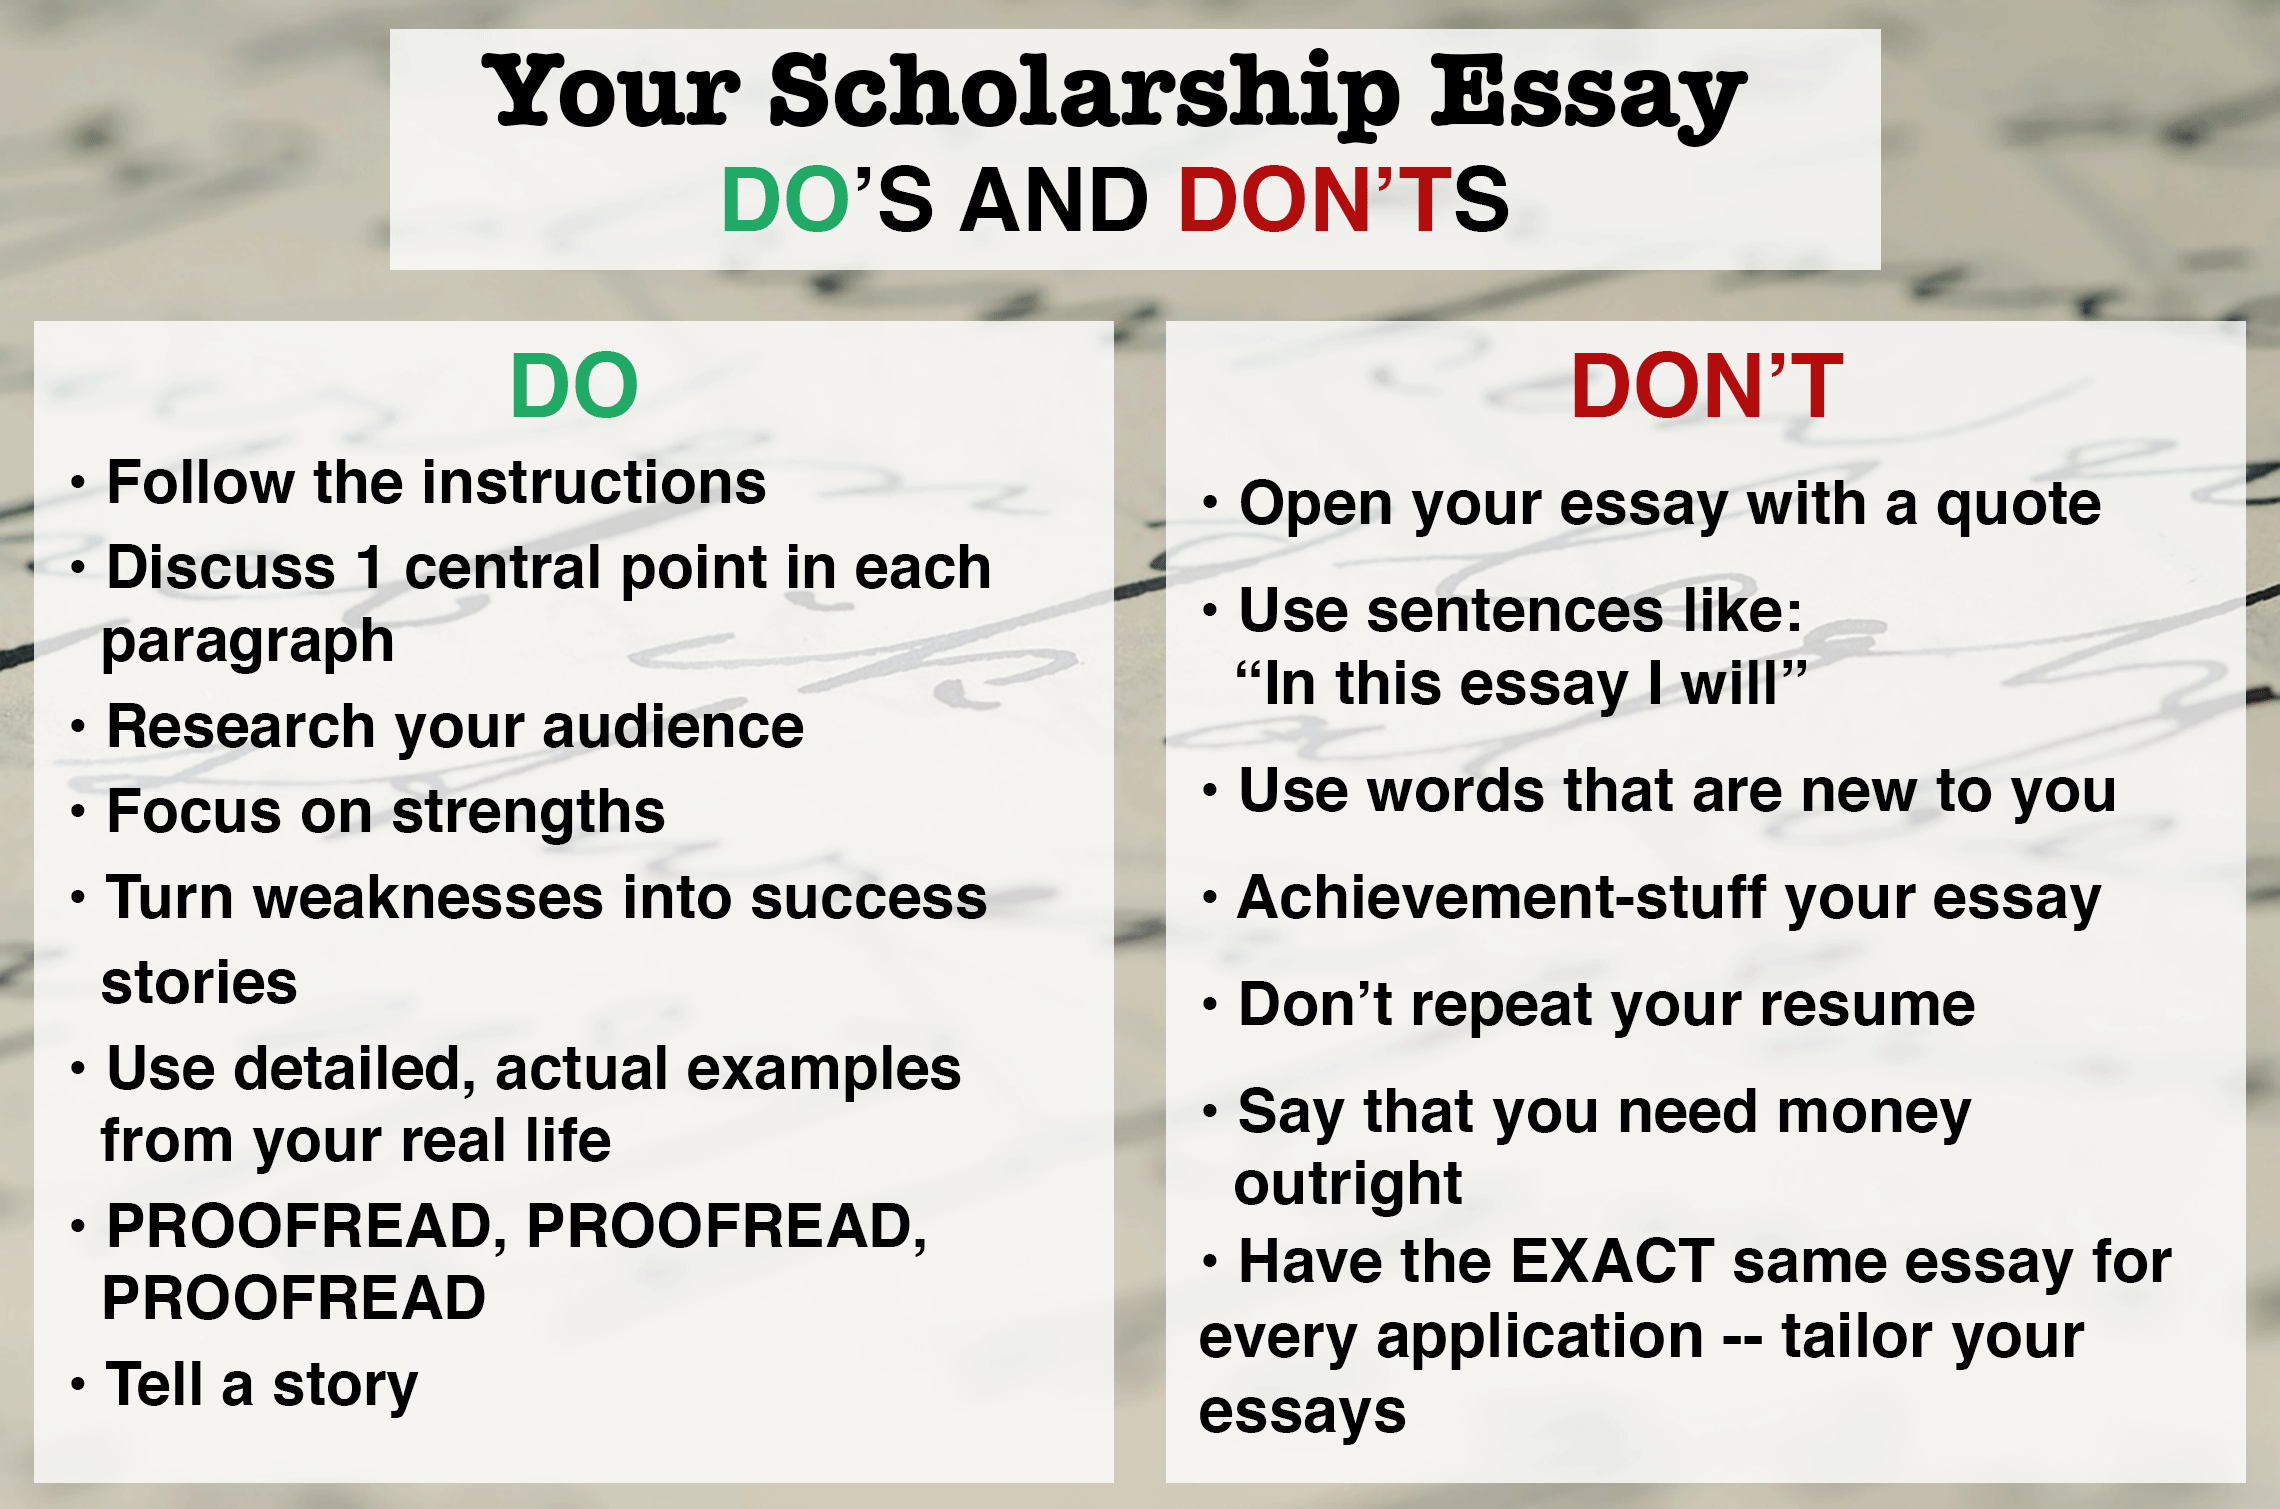 write best essay scholarship Very few scholarship programs are based solely on an application form or transcript the essay is often the most important part of your application it gives the scholarship committee a sense of who you are and your dedication to your goals you'll want to make sure that your scholarship essay is the best it can possibly be.